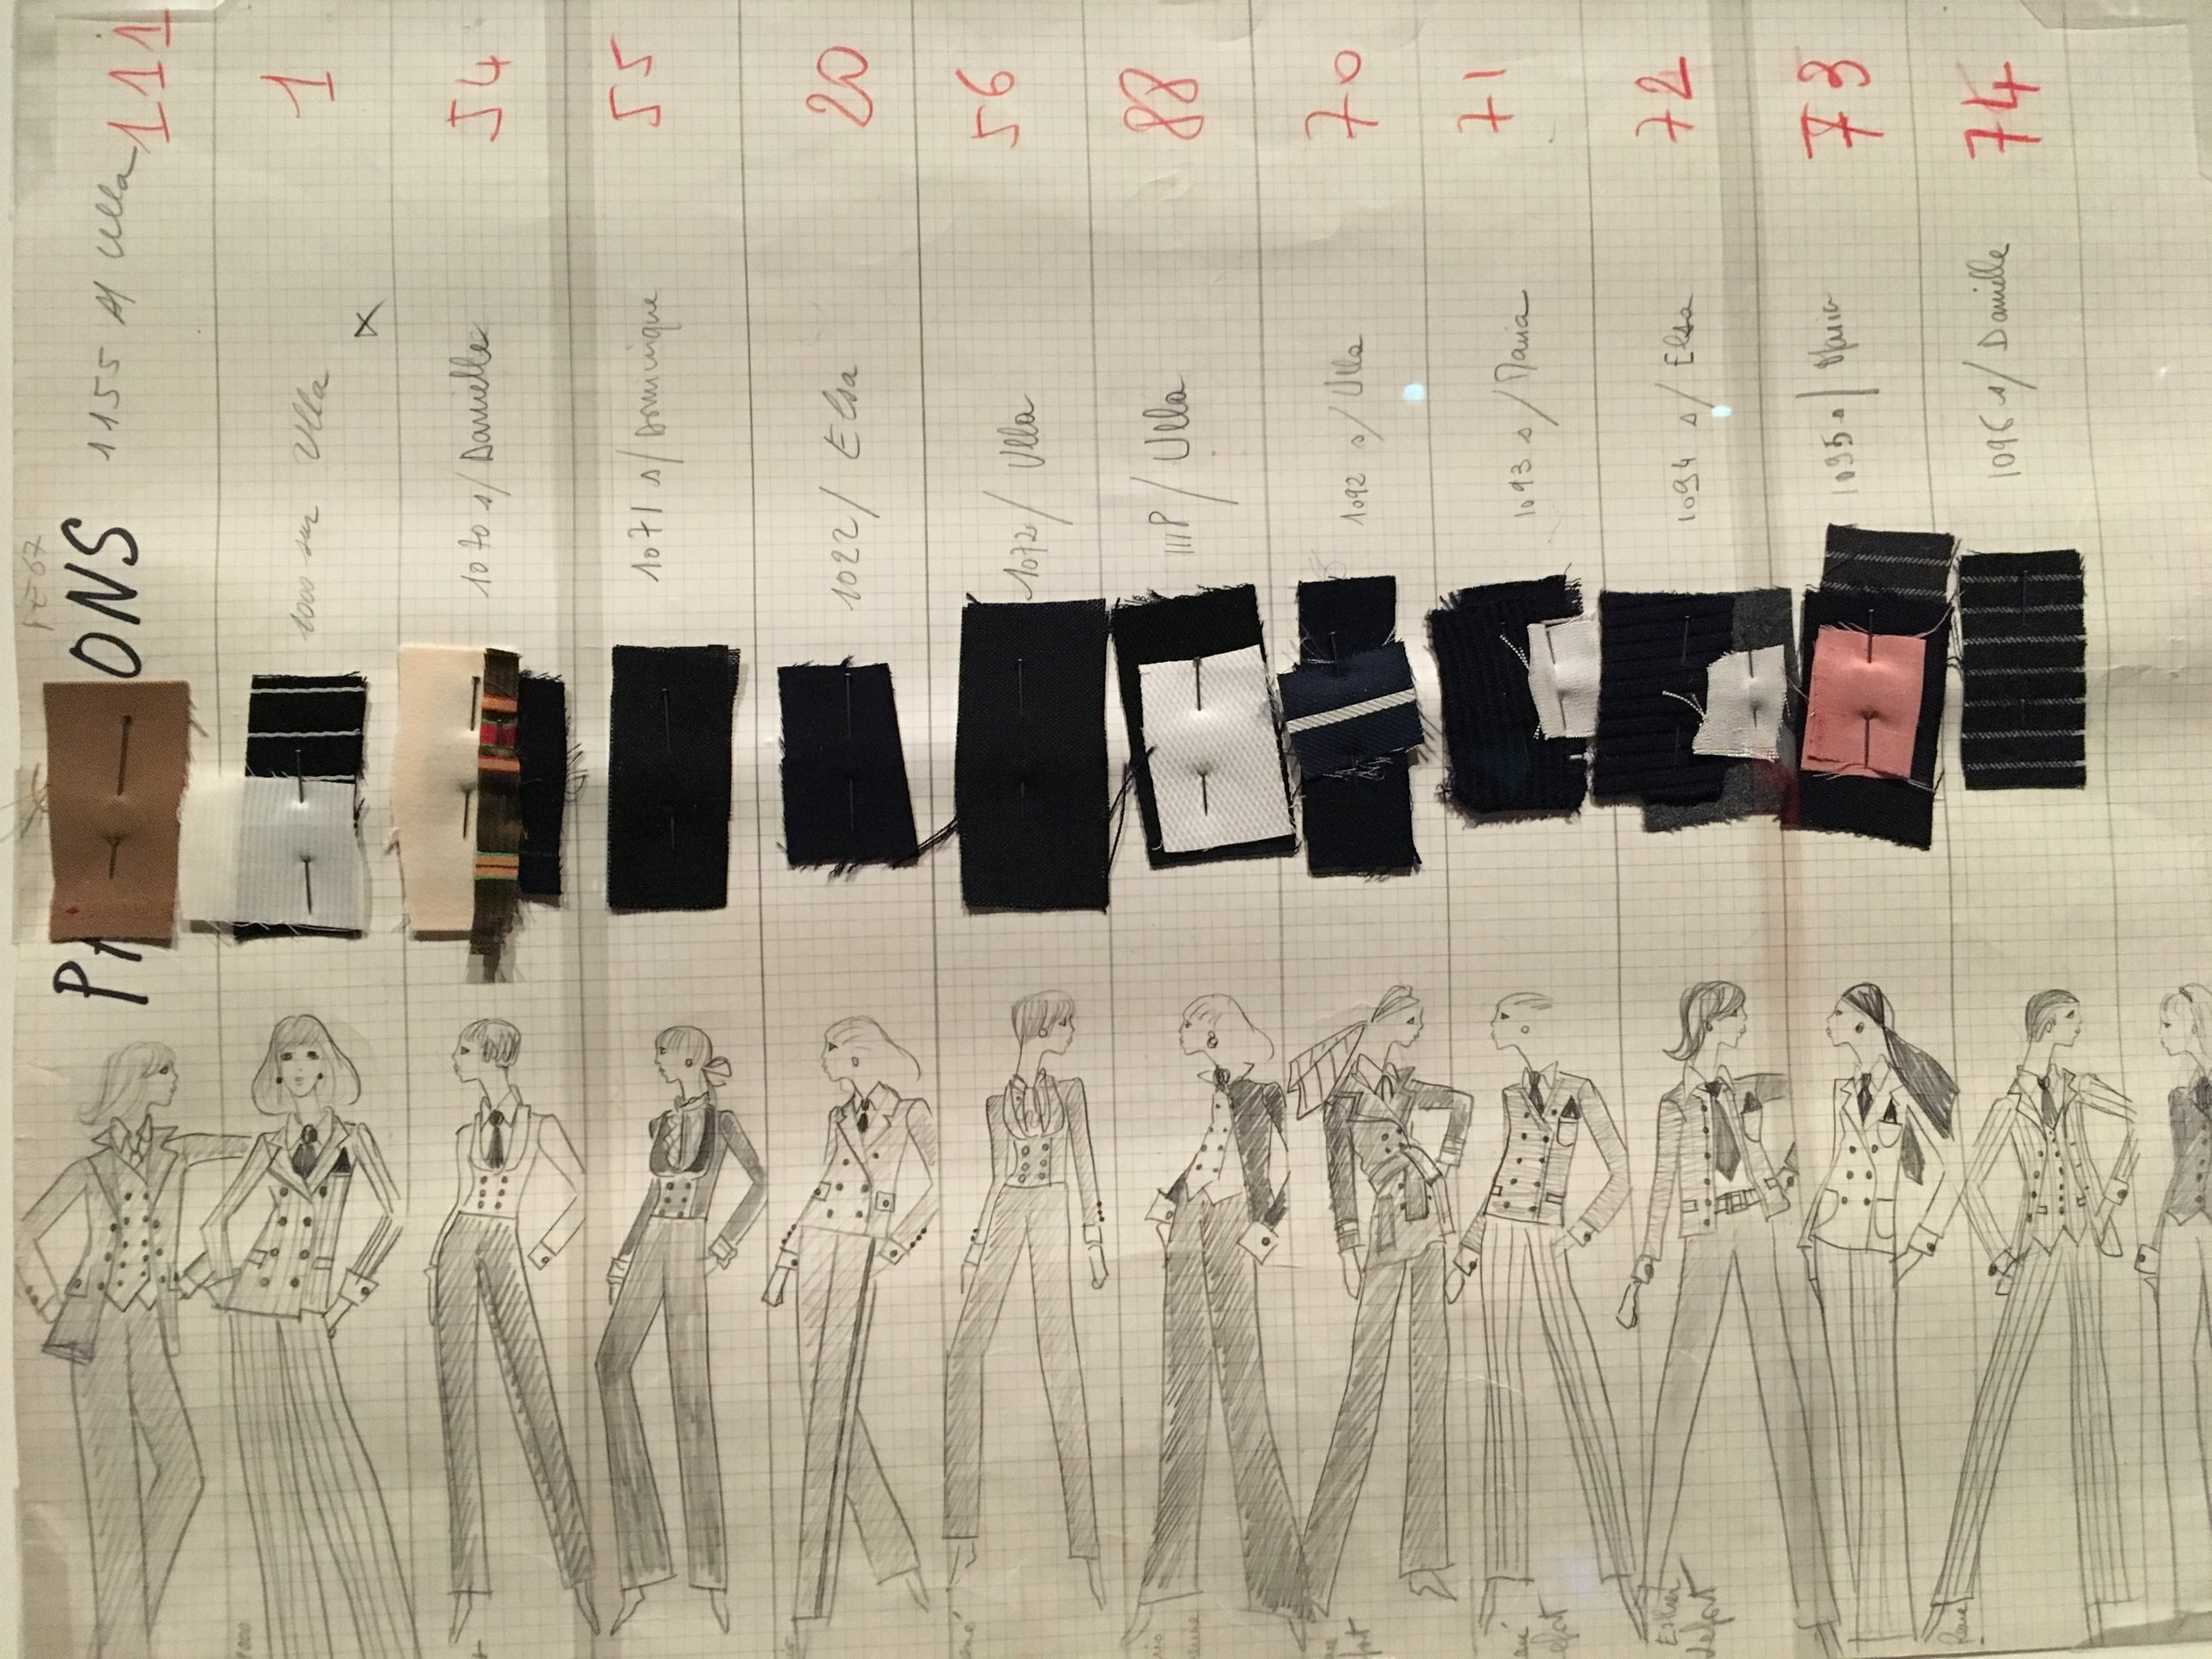 yves saint laurent vmfa sketches